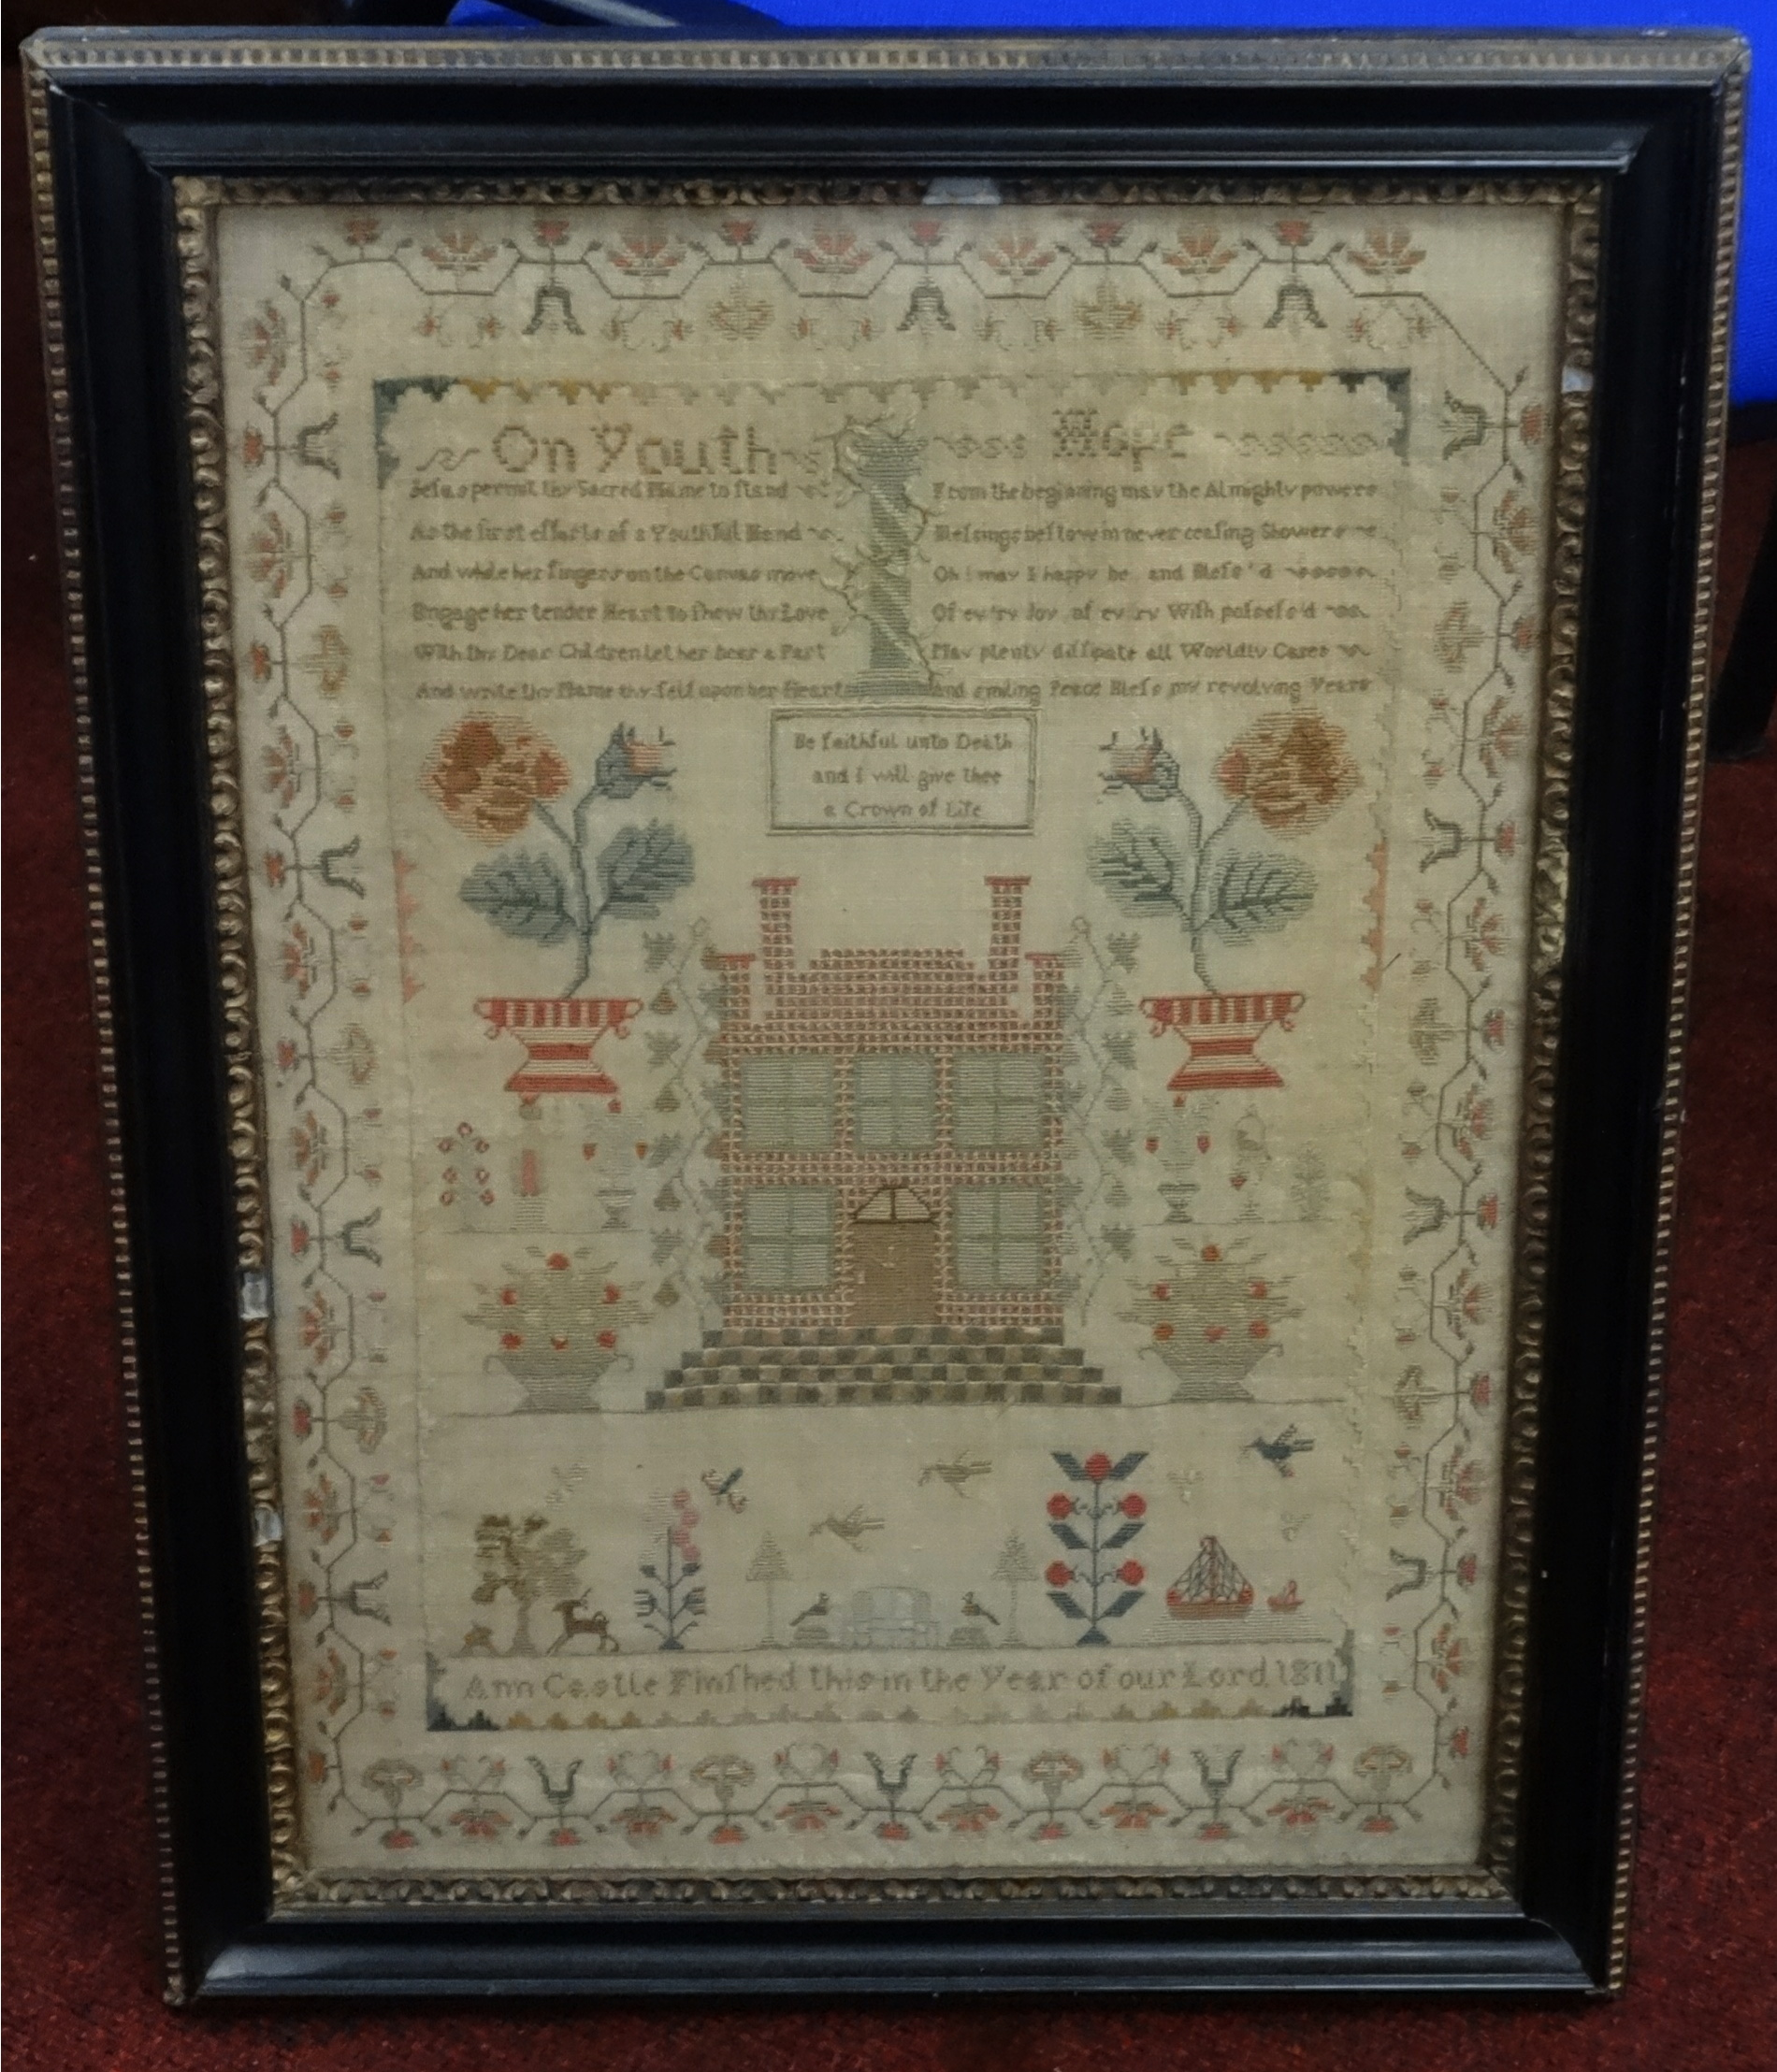 Lot 152 - A 19th century needlework Sampler by Ann Castle, dated 1811, 45cm x 32cm, (the owners grandparents